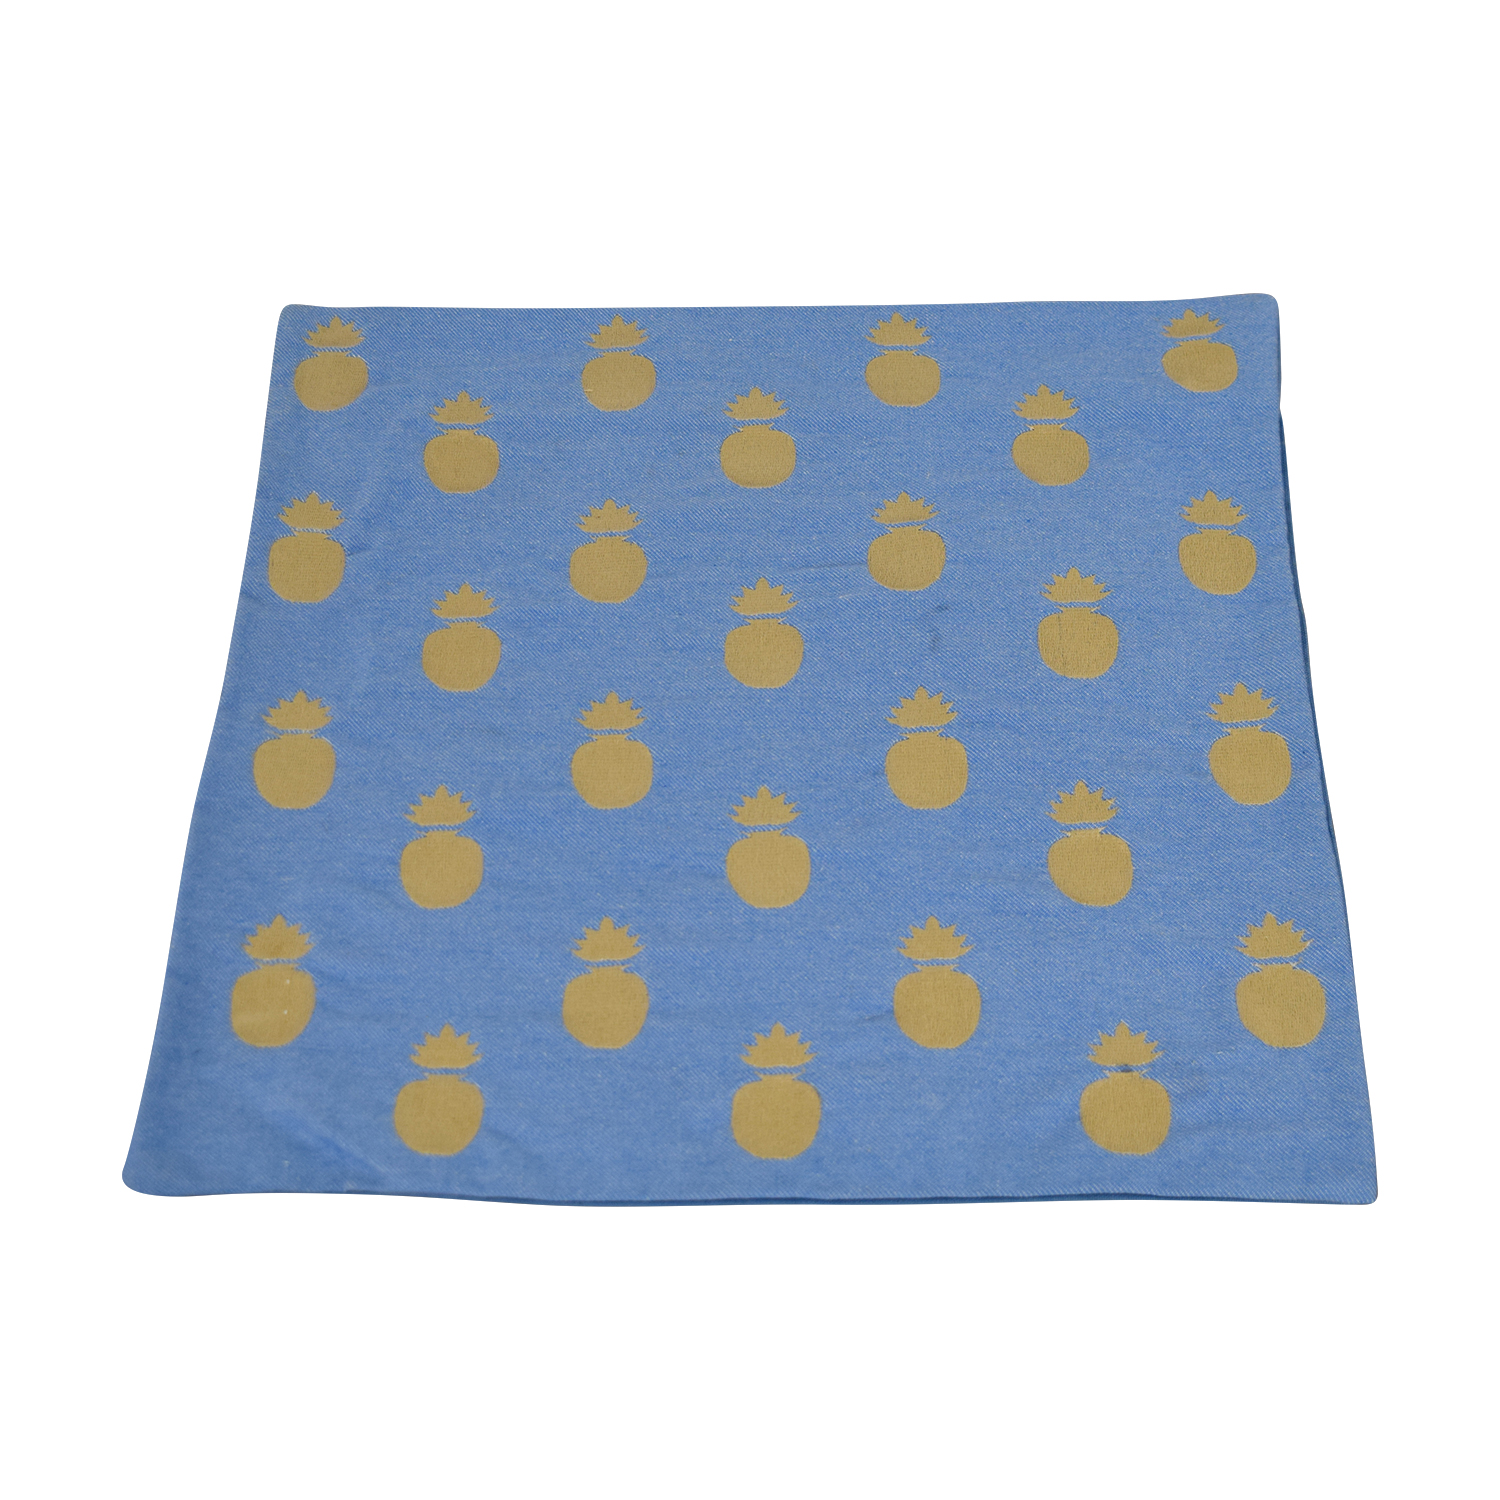 Obeetee Pineapple Blue Cushion Cover / Decorative Accents